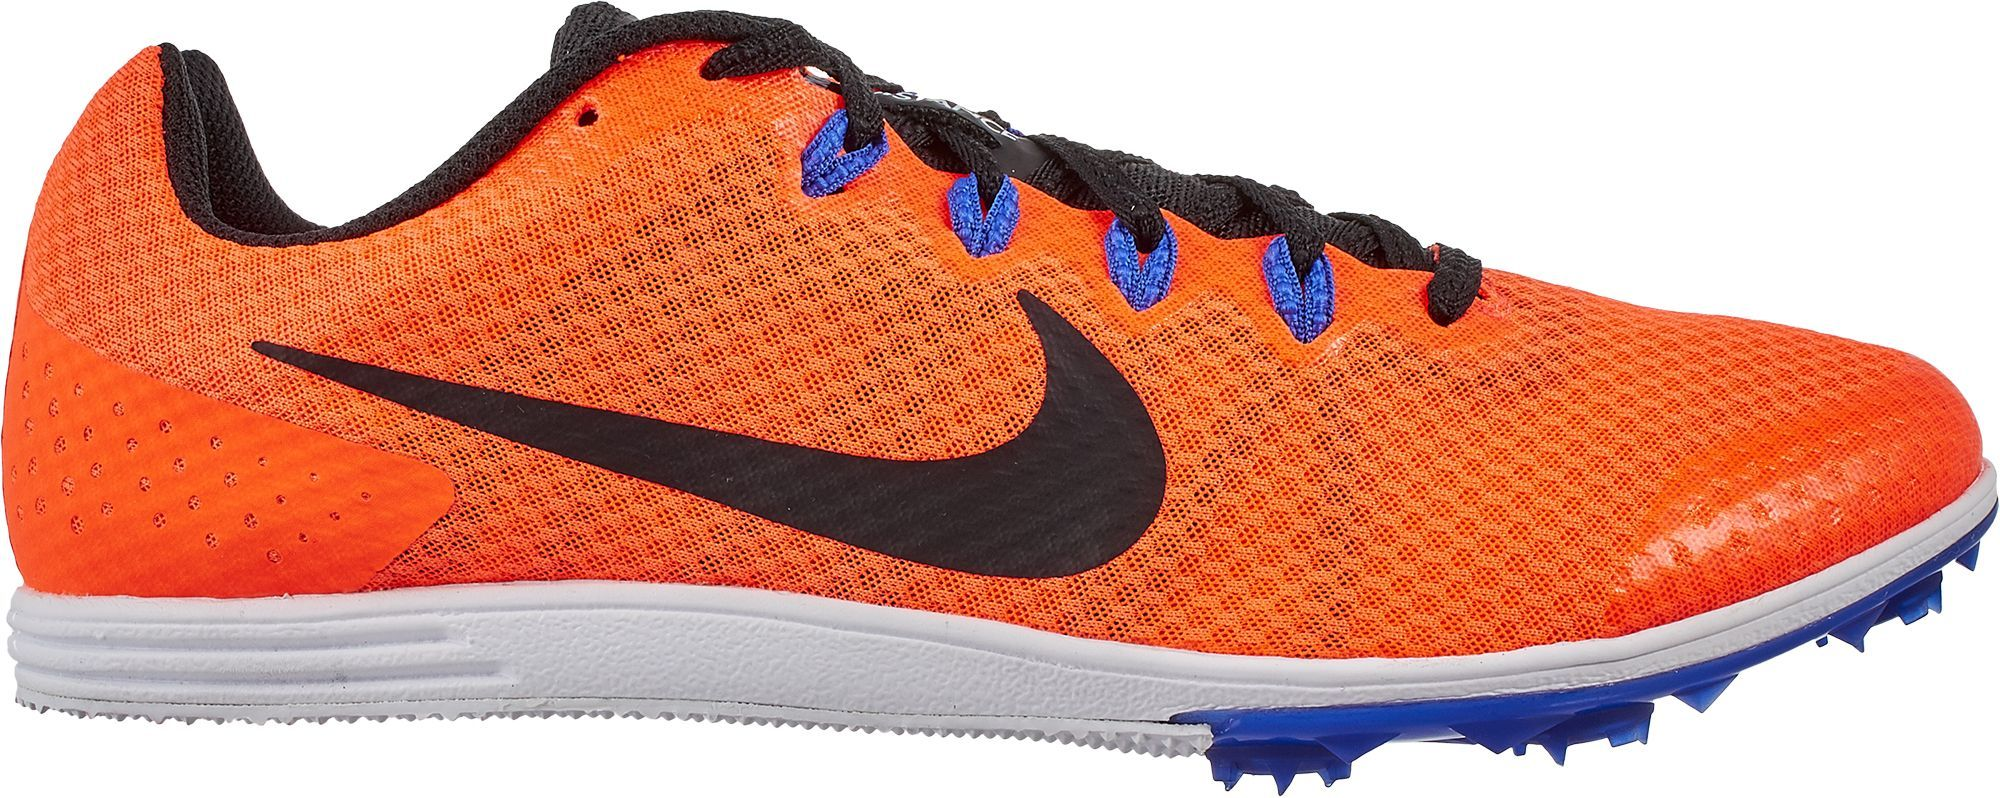 Nike Men's Zoom Rival D 9 Track and Field Shoes Pinterest Fields